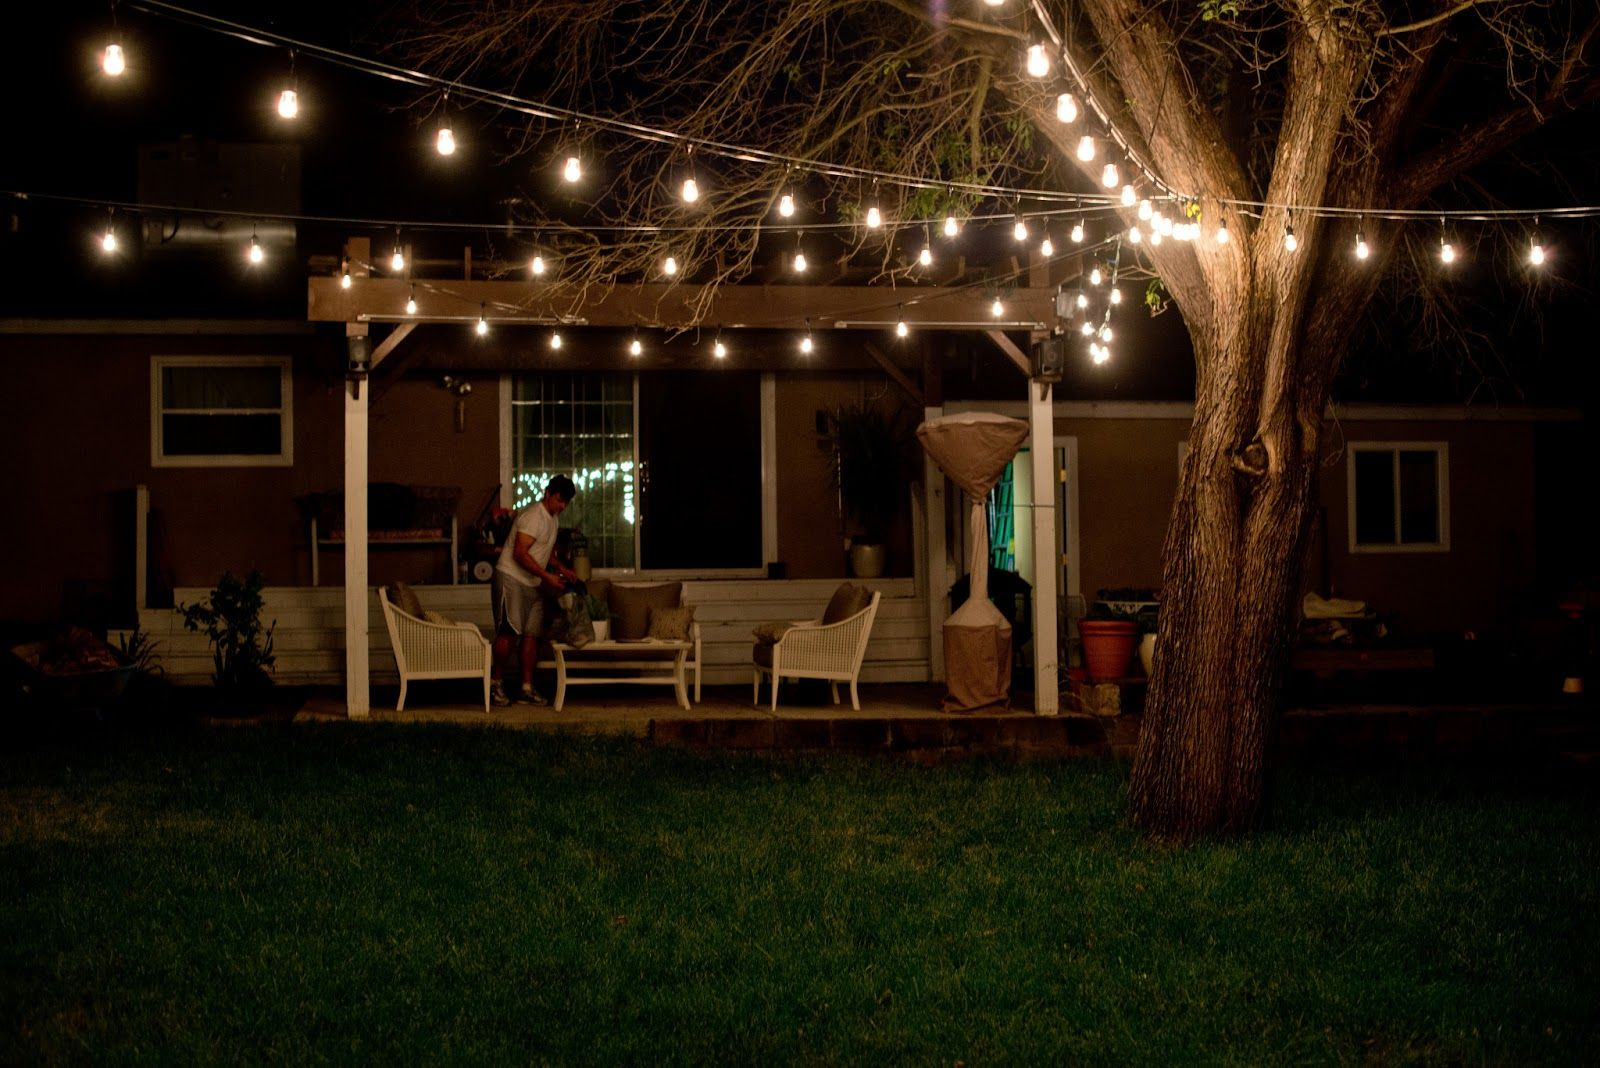 Outdoor String Lights Pinterest : Domestic Fashionista: Industrial Vintage Backyard Lighting The Great Outdoor... Spaces ...